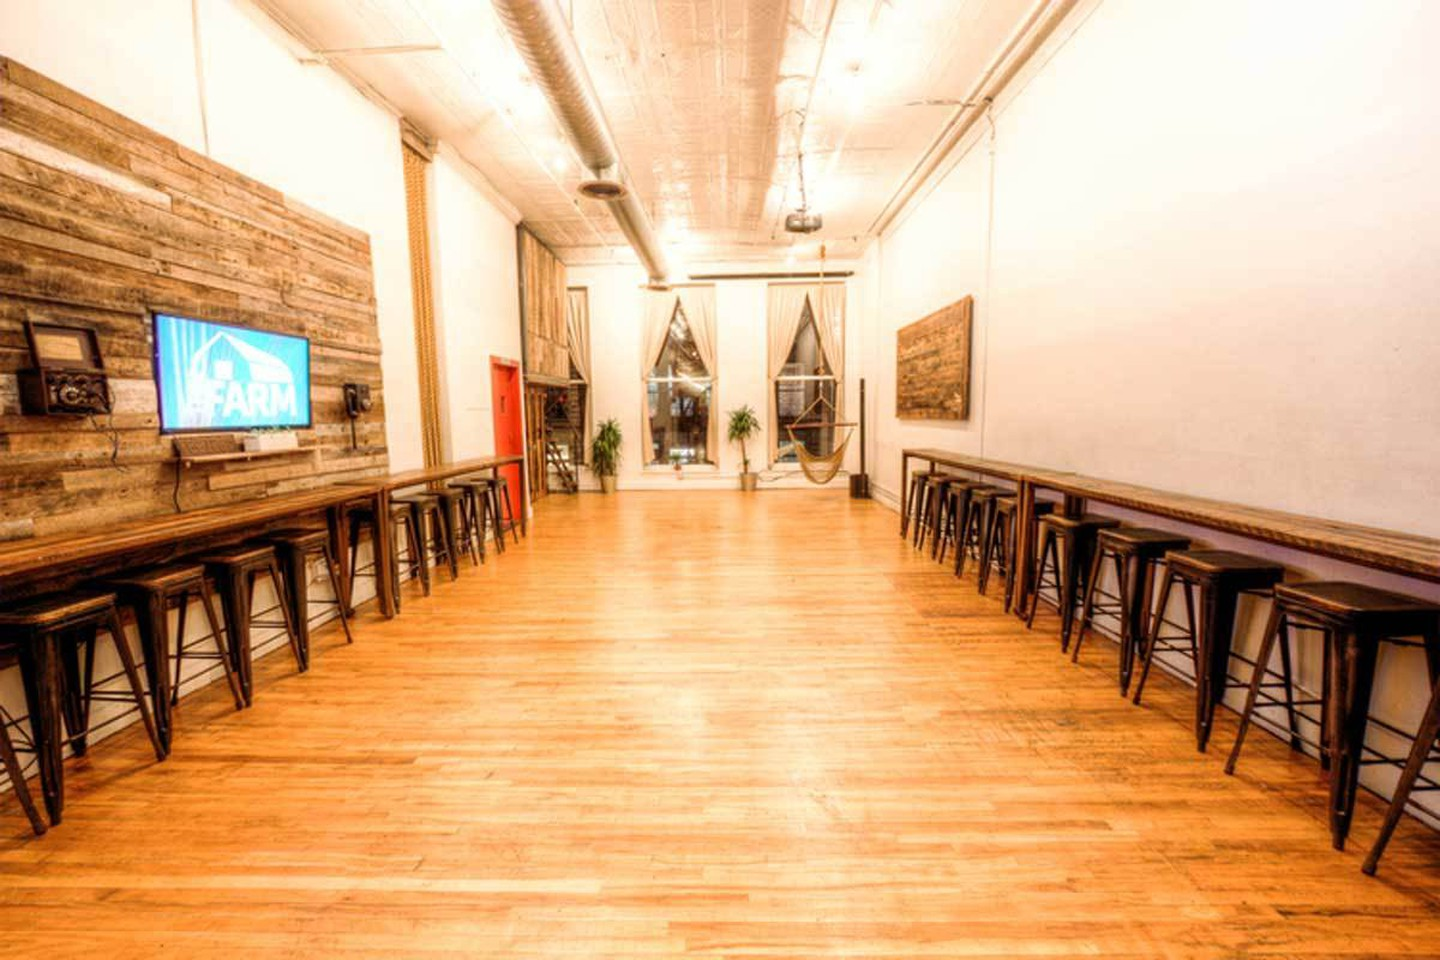 NYC workshop spaces Coworking Space The Farm Soho - Main Venue image 6